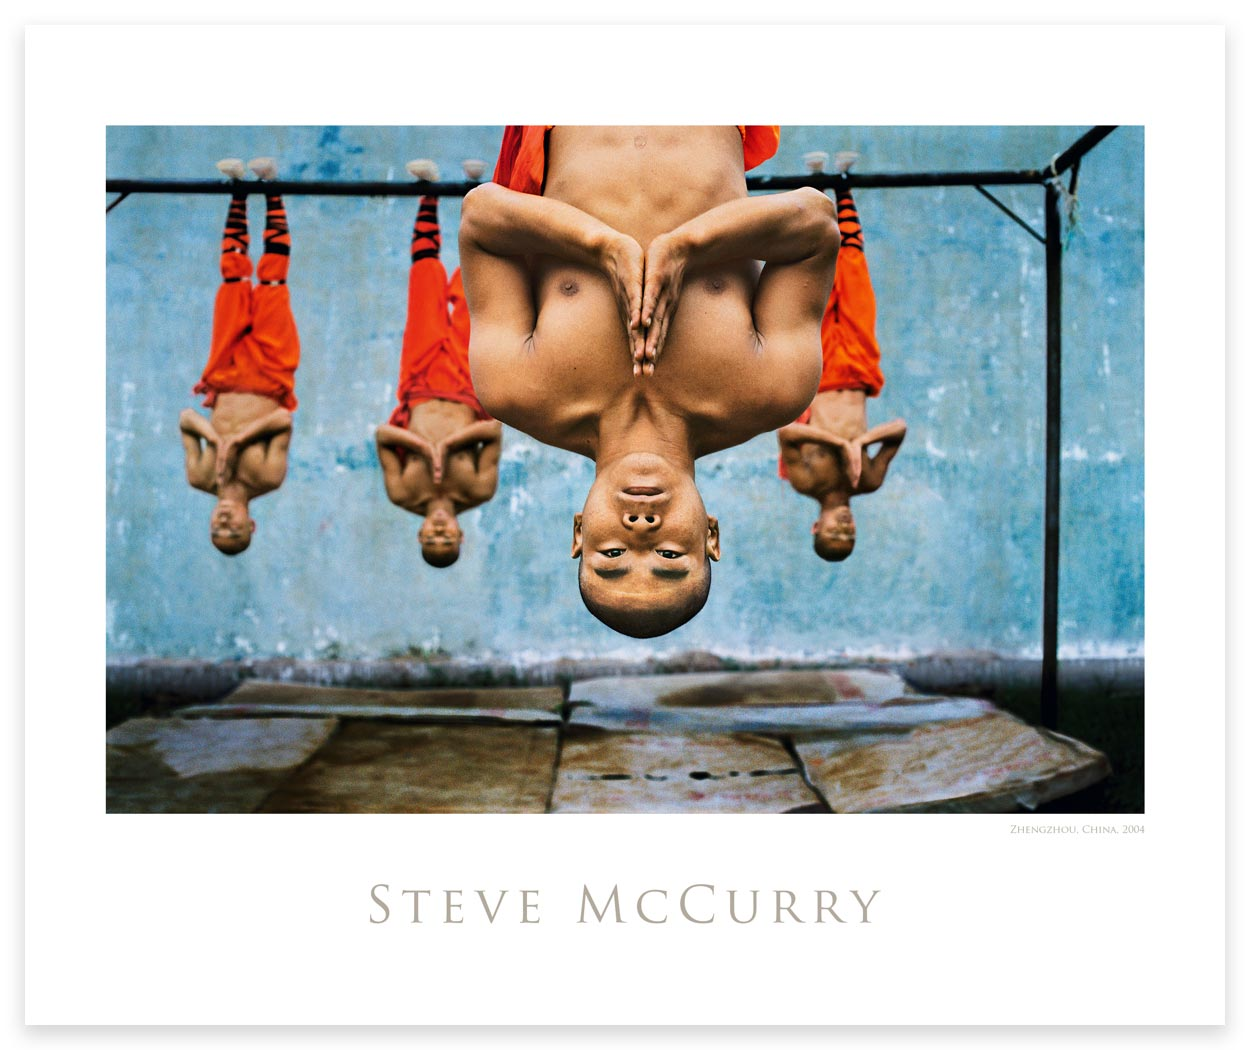 Poster: Shaolin Monks Training by Steve McCurry